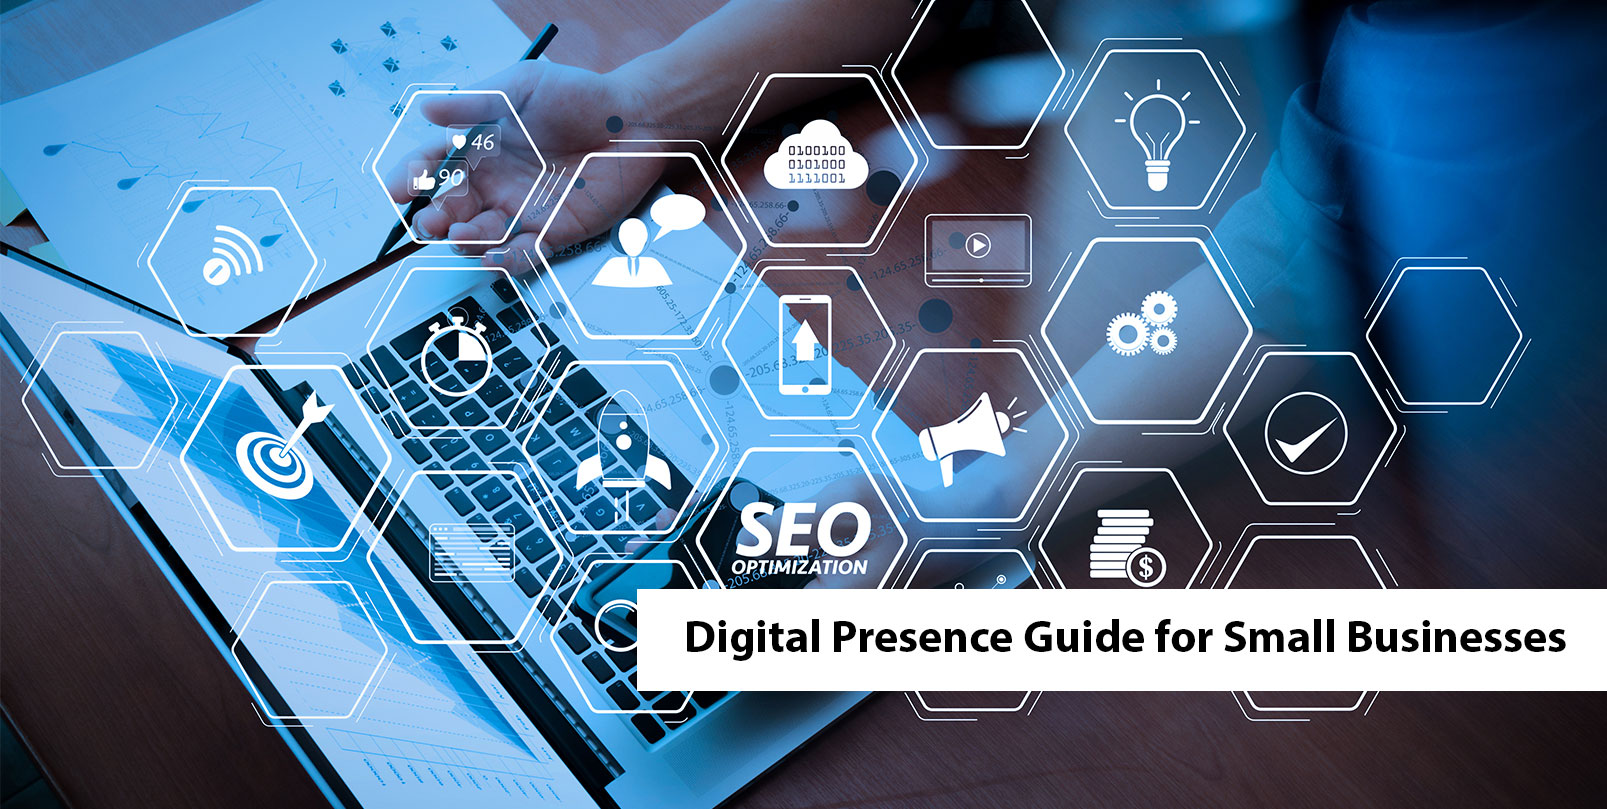 Digital Presence Guide for Small Businesses